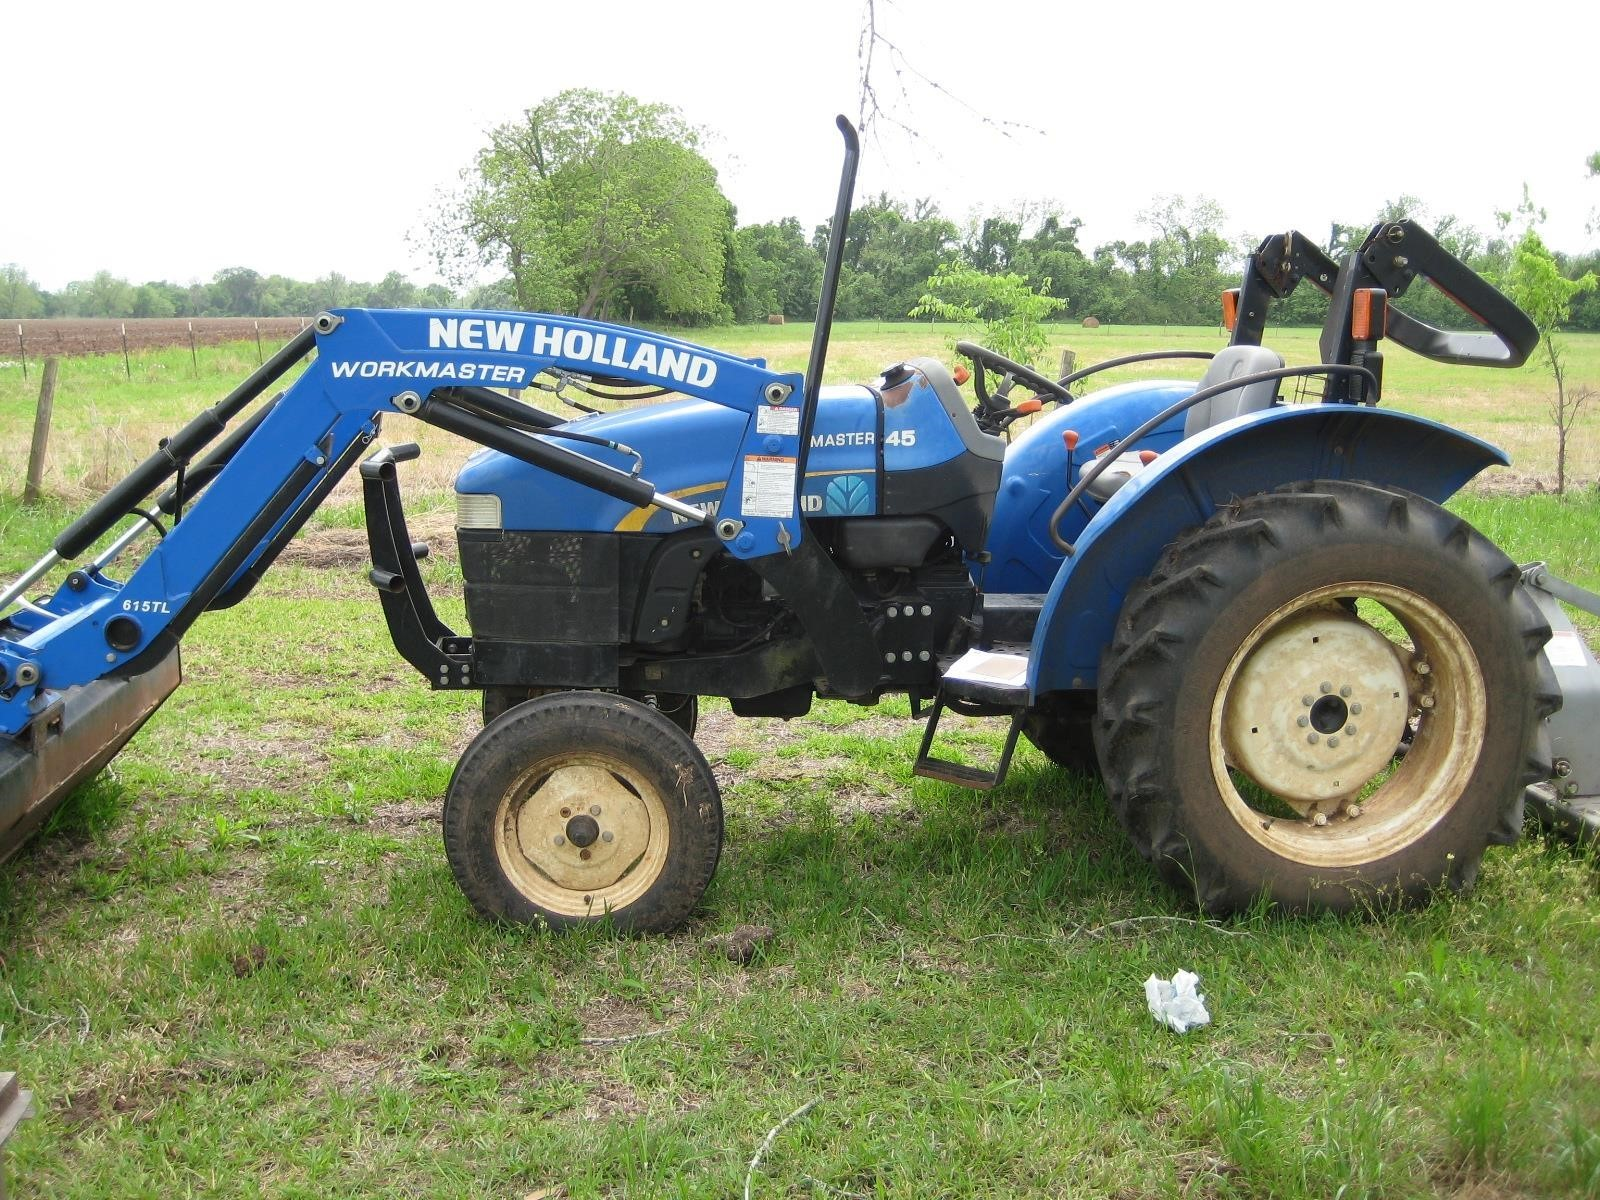 2012 New Holland Workmaster 45 Tractor